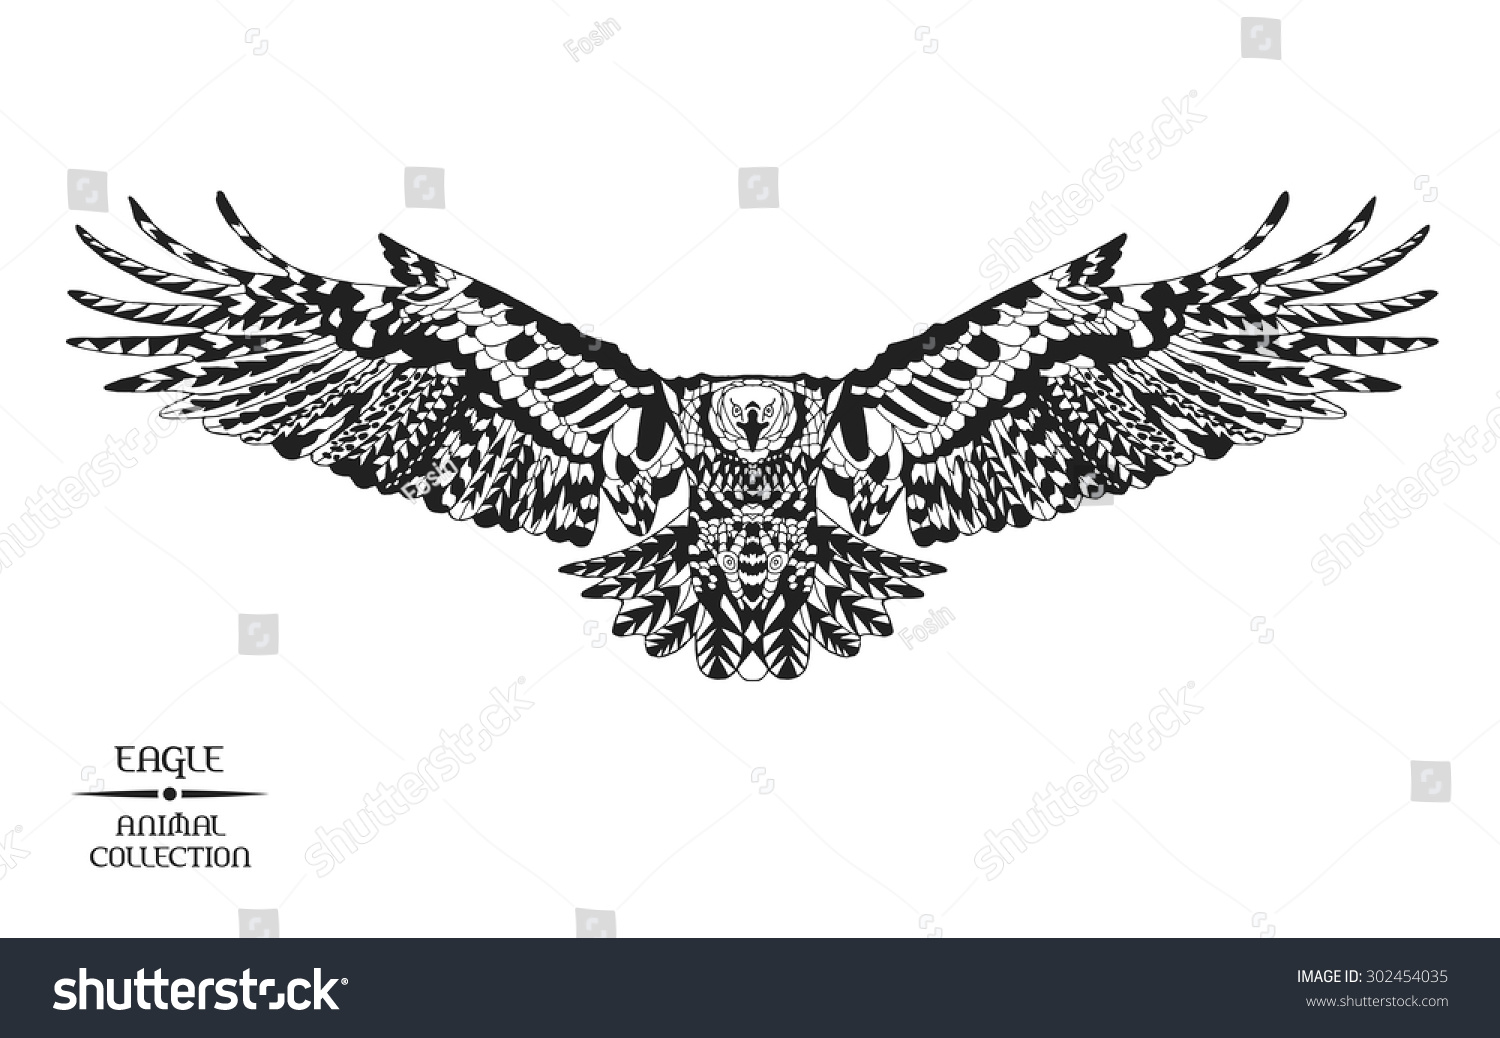 eagle mandala coloring pages - eagle black white hand drawn doodle stock vector 302454035